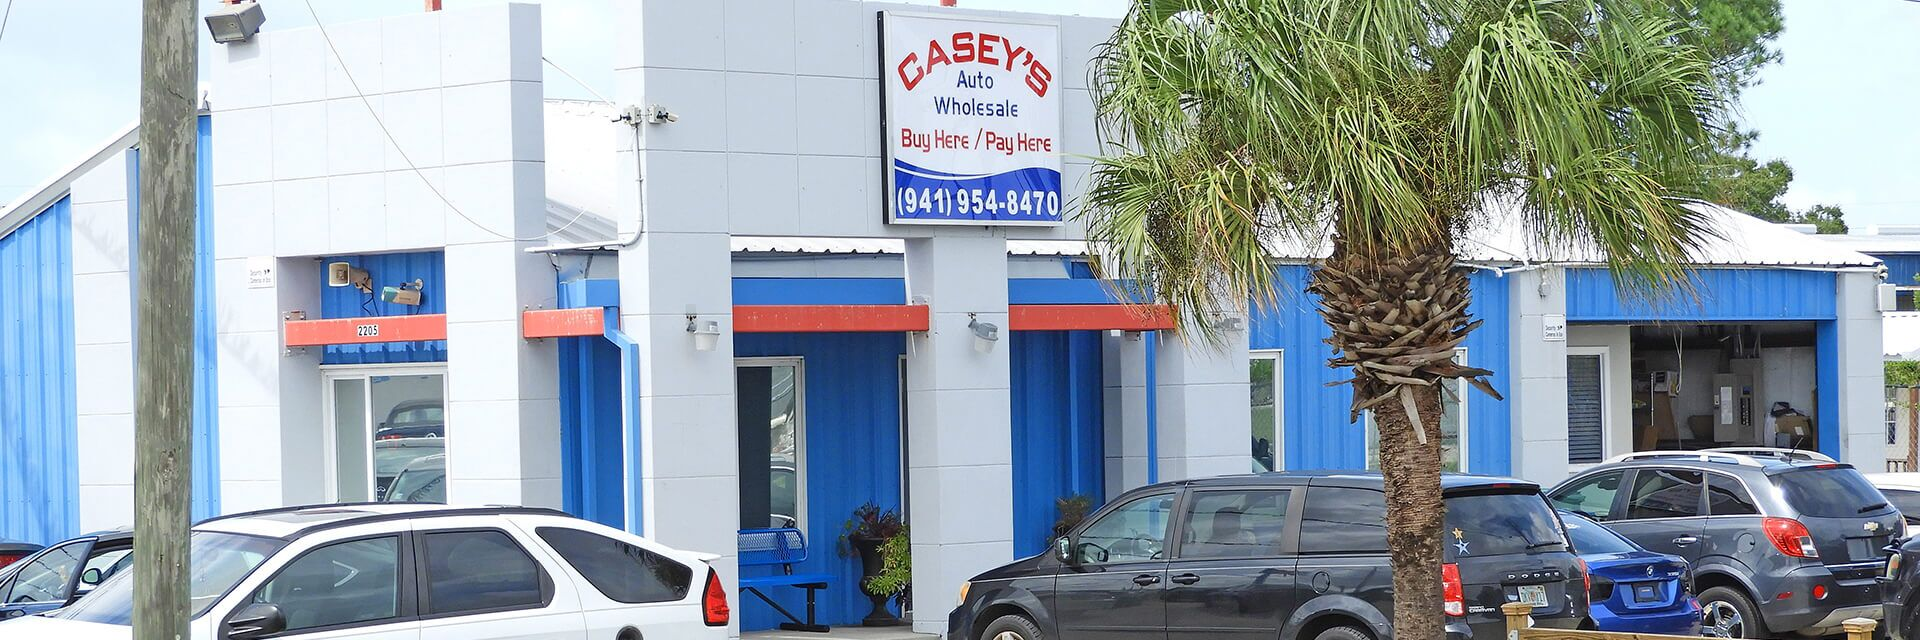 Used Vehicle Dealership Sarasota FL | Casey's Auto Wholesale